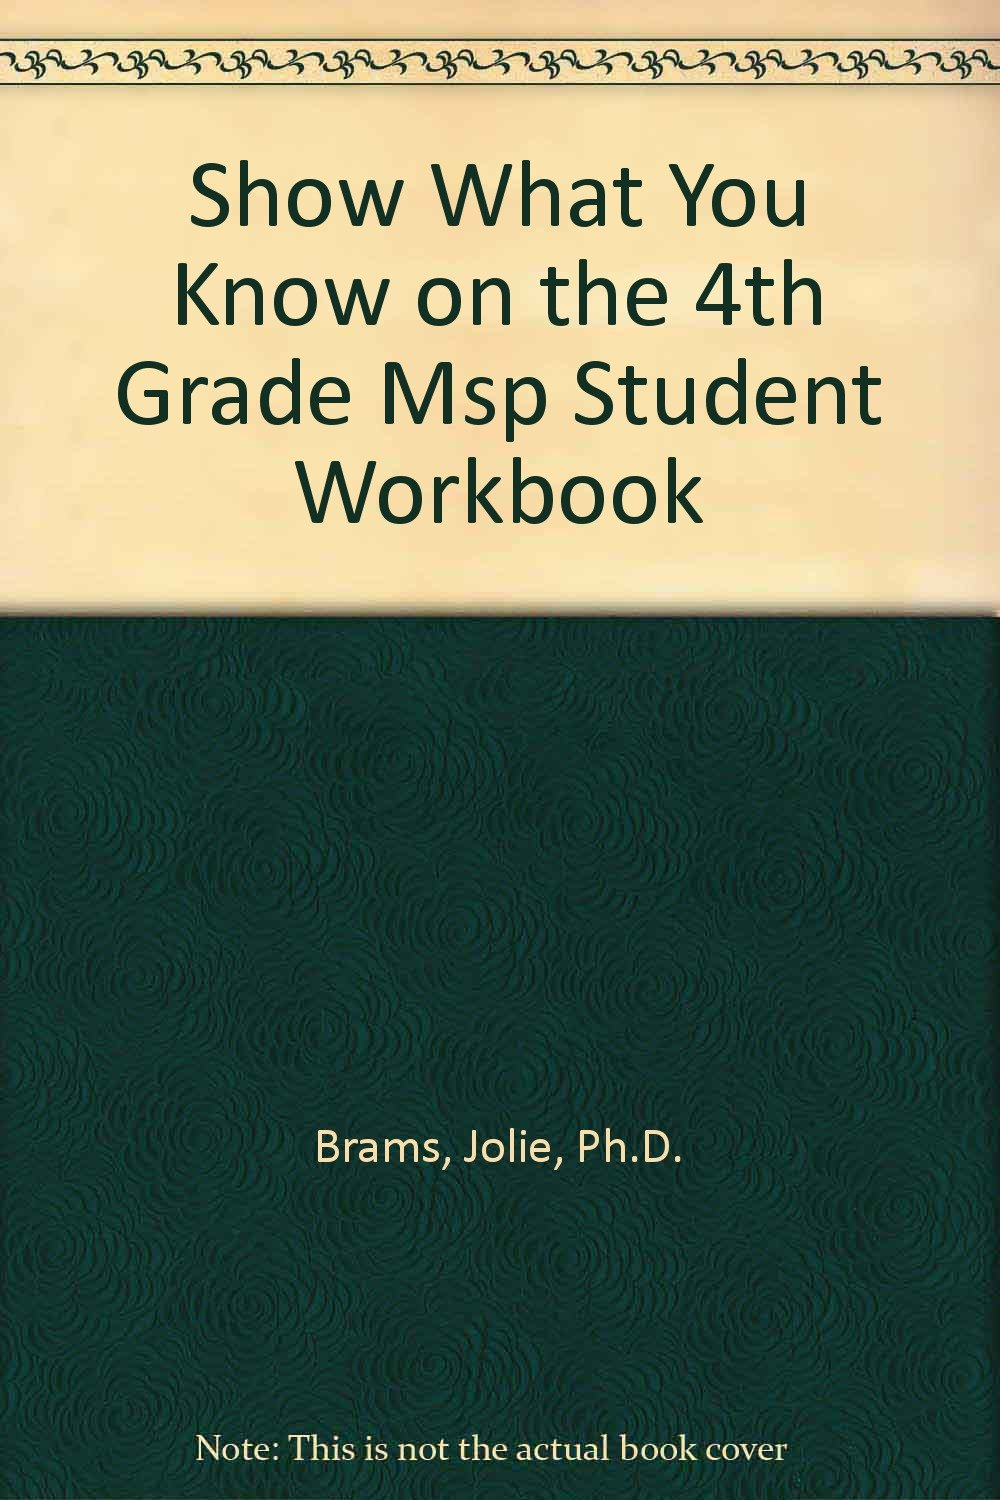 Show What You Know on the 4th Grade MSP: Student Workbook (Washington State  Measurement of Student Progress): Jolie Brams: 9781592303380: Amazon.com:  Books